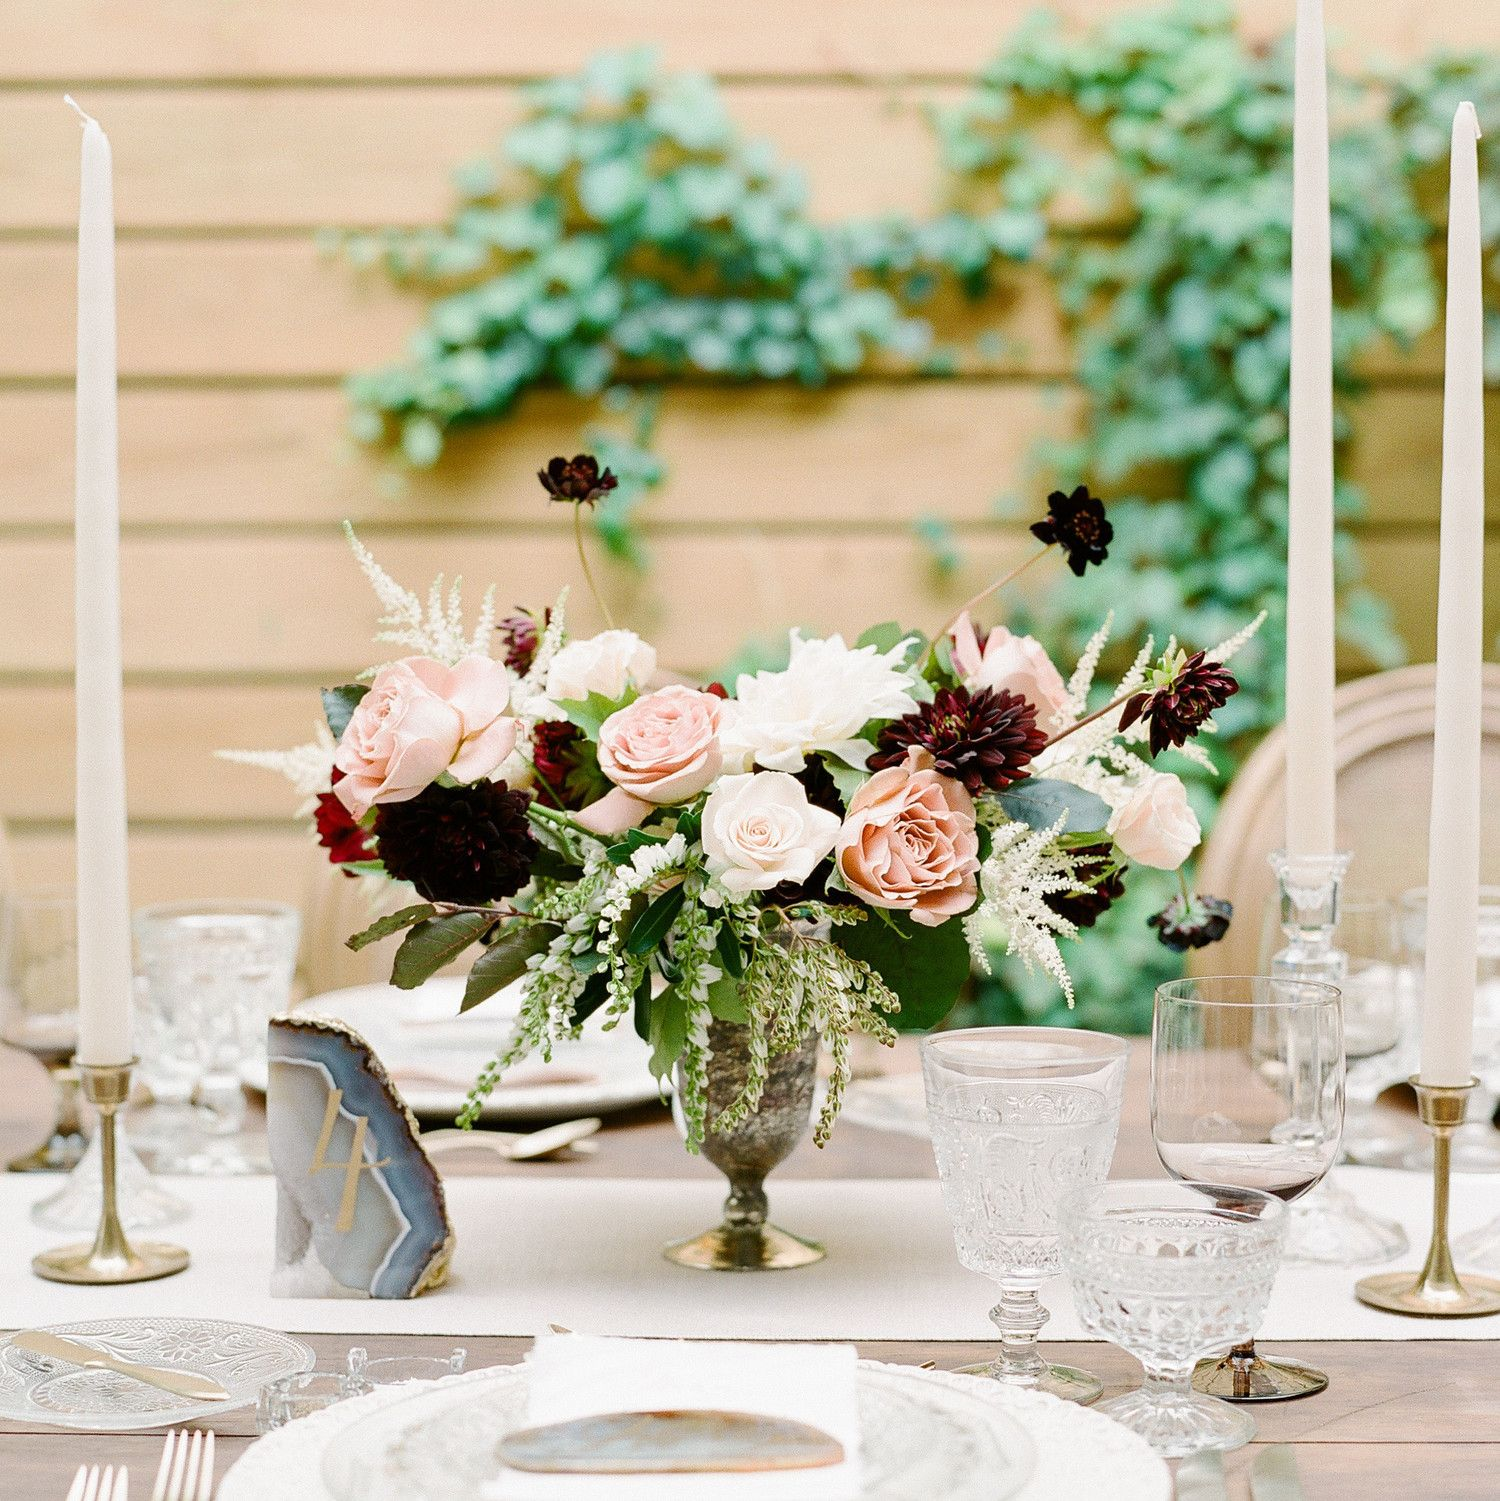 Wedding Flowers Meaning: This Dreamy Wedding Tablescape Gives New Meaning To